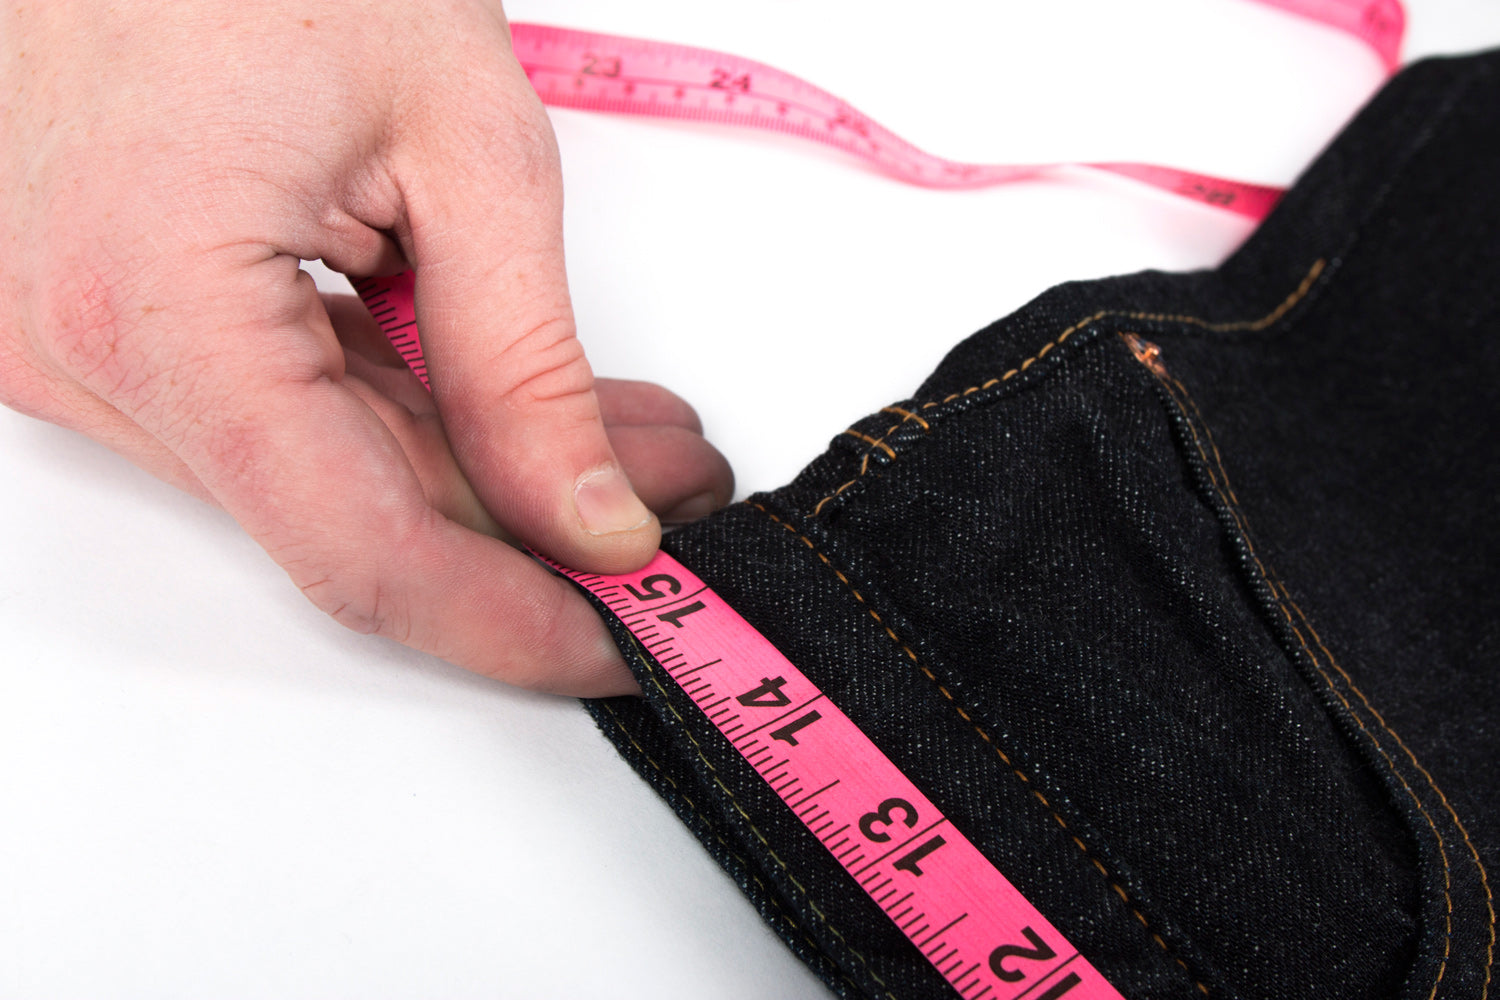 waist-measurement-step-2